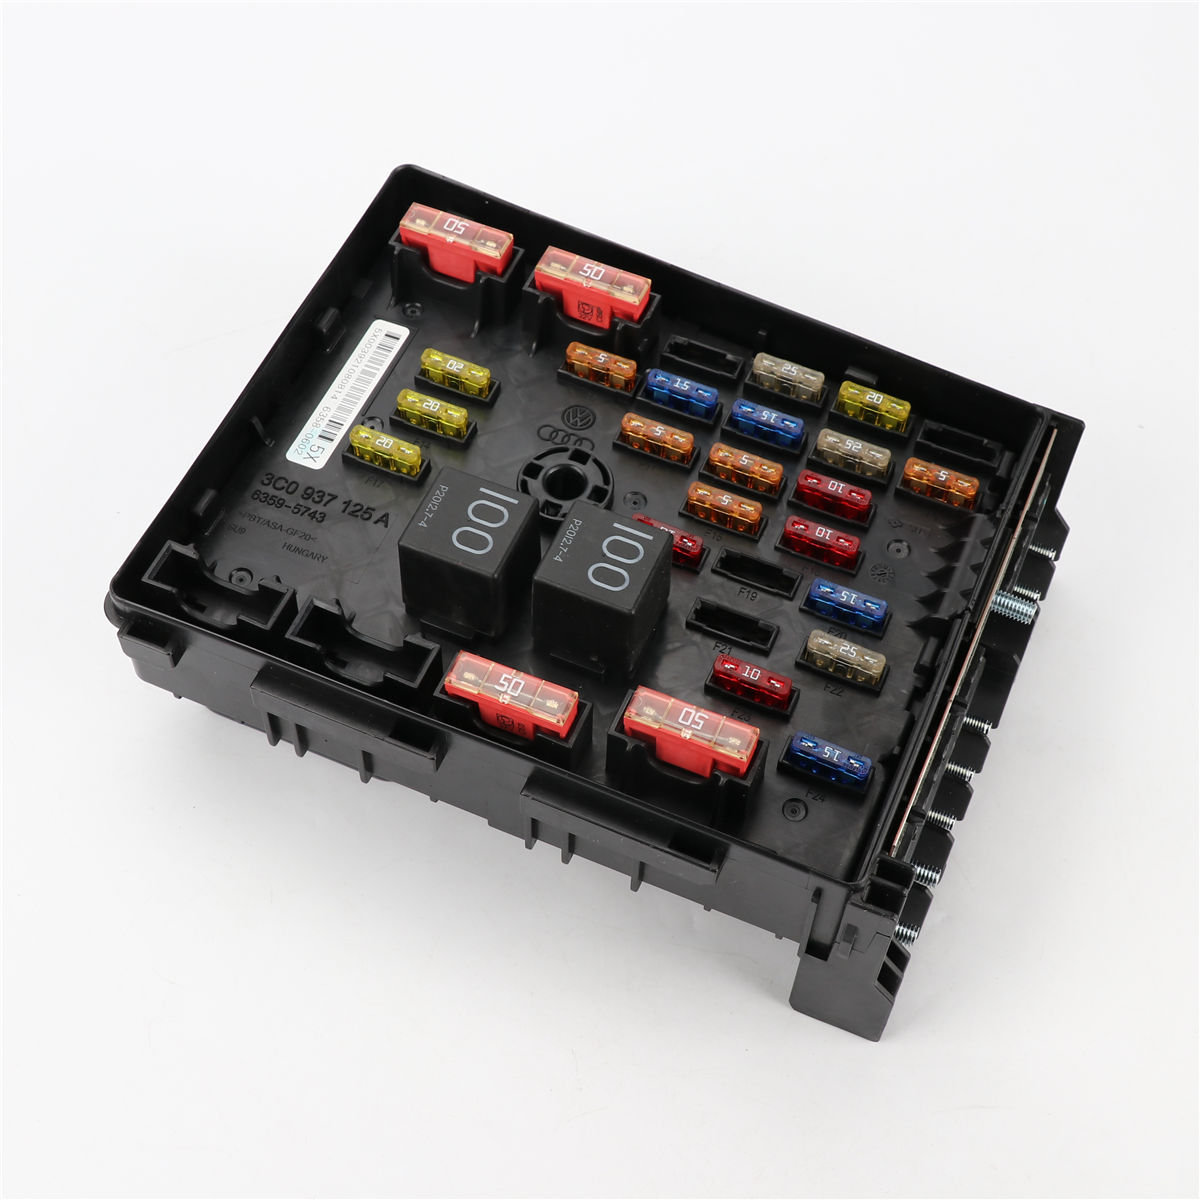 New Main Relay Fuse Box for VW Passat B6 Tiguan CC AUDI Q3 SEAT Alhambra  Touran Sharan 3C0 937 125 A-in Fuses from Automobiles & Motorcycles on ...